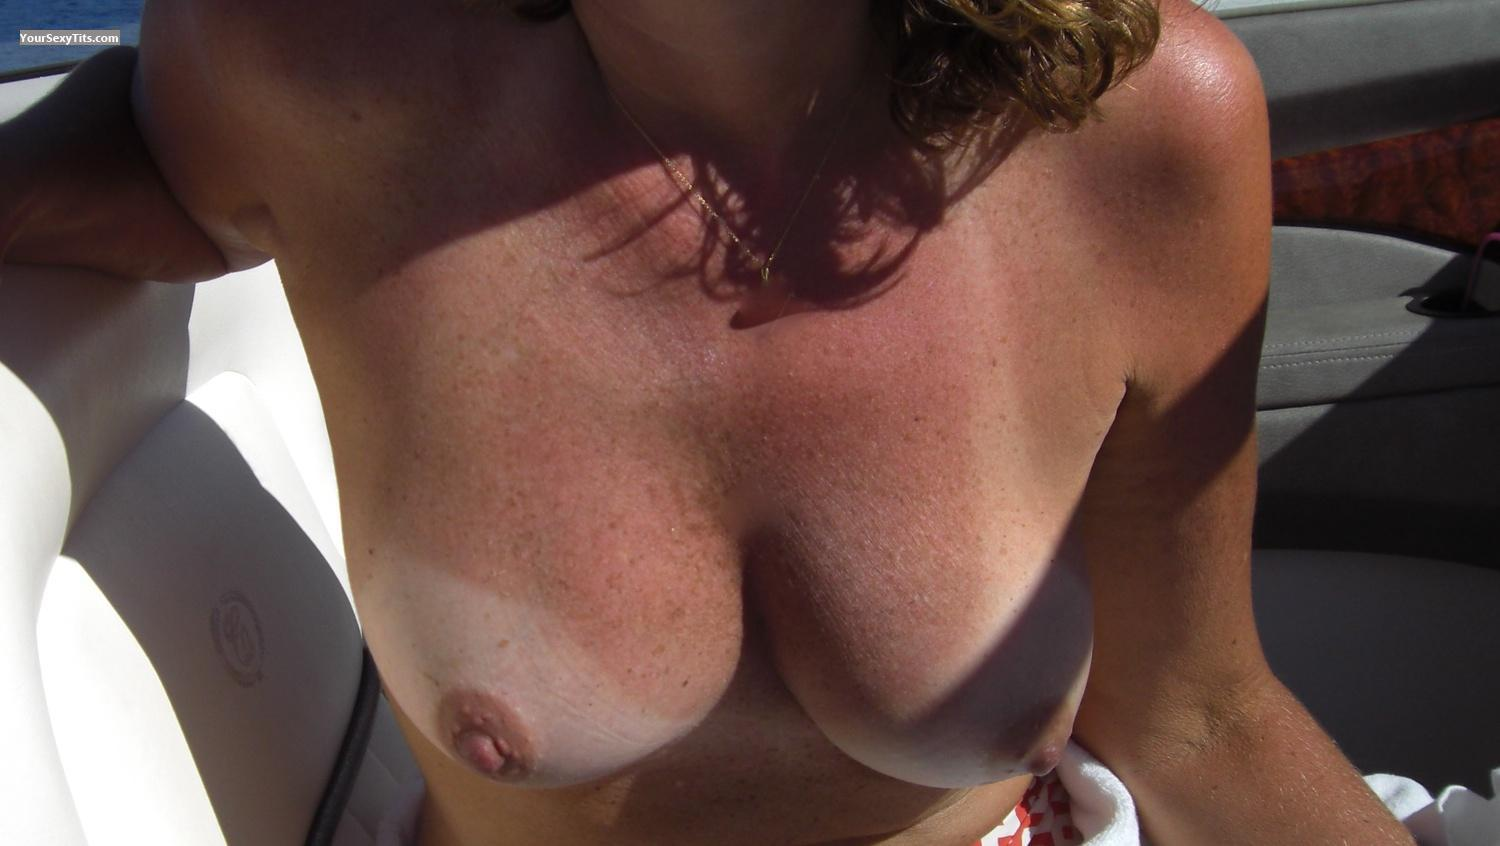 Tit Flash: Medium Tits By IPhone - Sweetie from United States